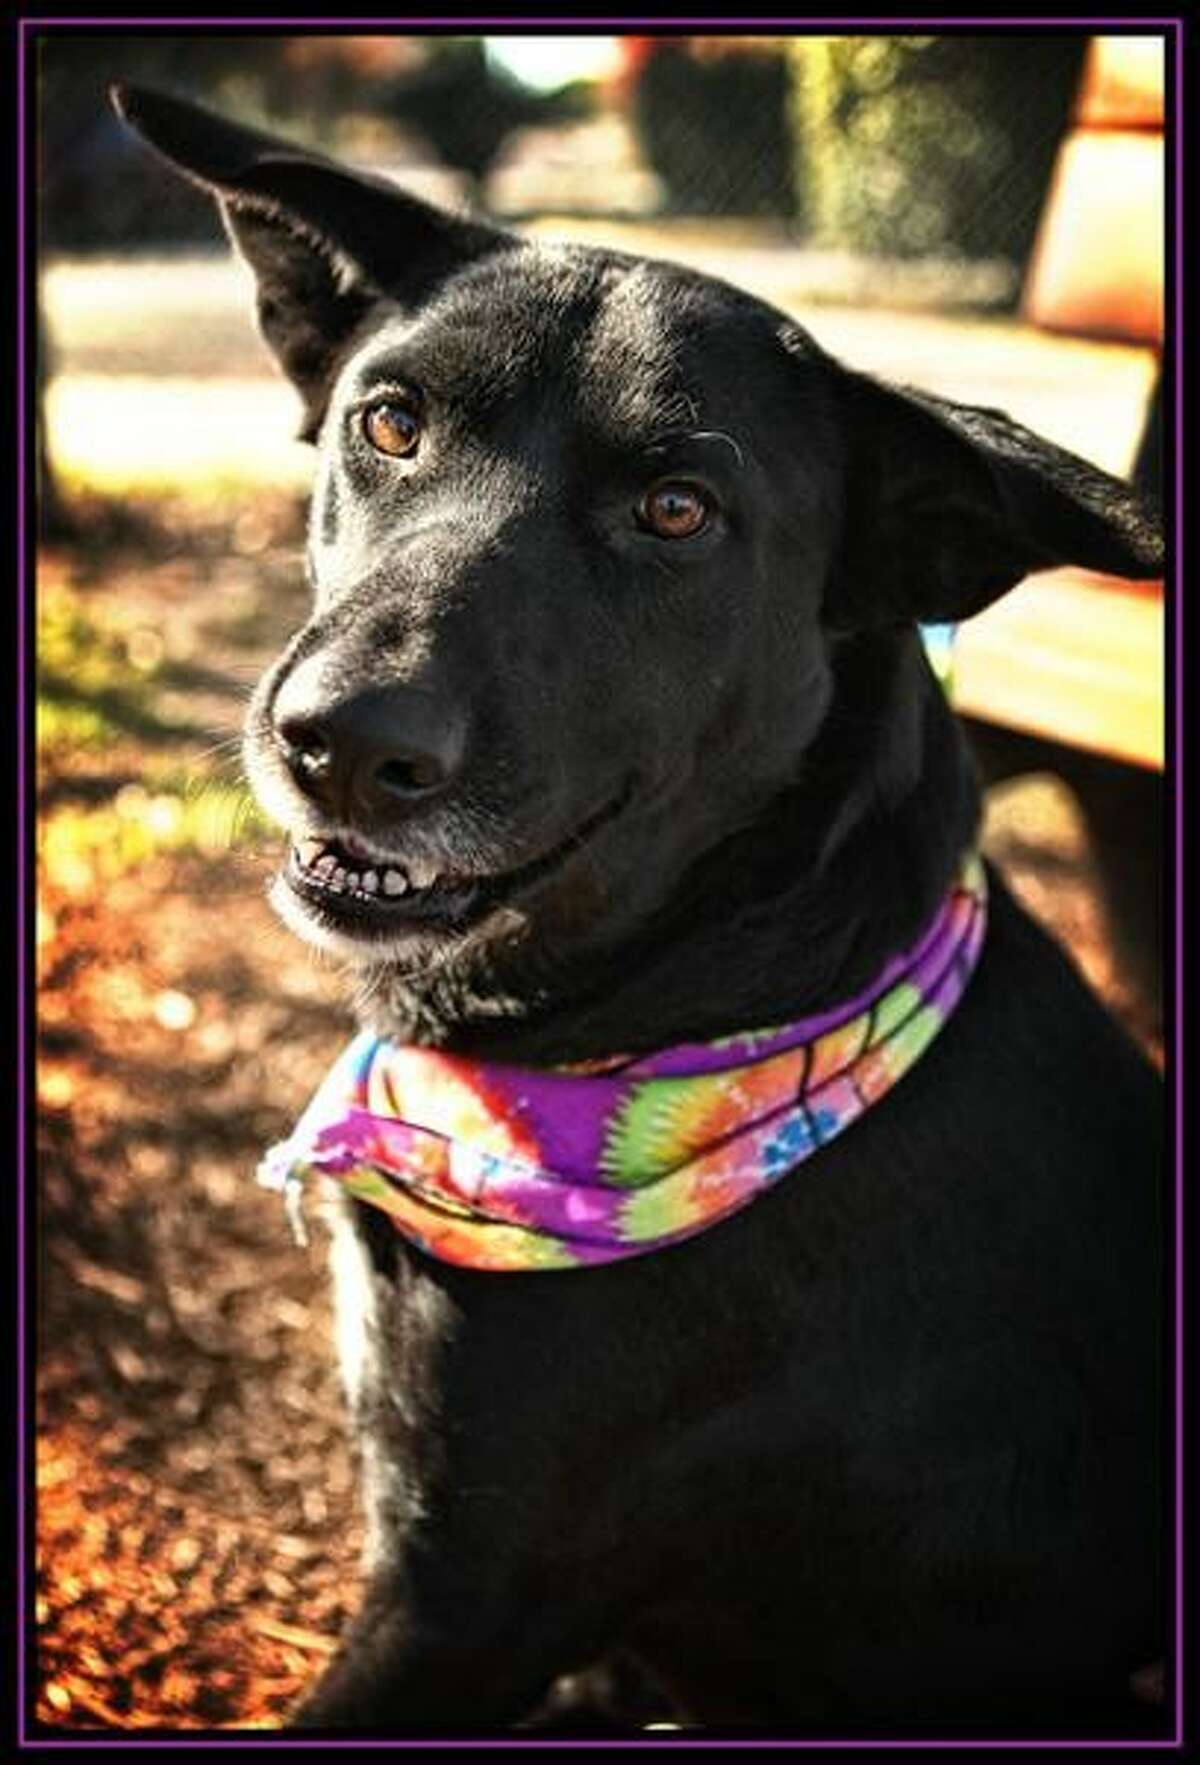 PreitaFemale ID# 205975 Preita is a just a pup at 1 year and 8 months. She is very friendly, playful and ready to learn and please. She is a lab mix who walks well on a leash and loves playing with stuffed toys. You can take her home today and make her a part of your family. We are located at 900 Portway Drive and open 7 days a week.